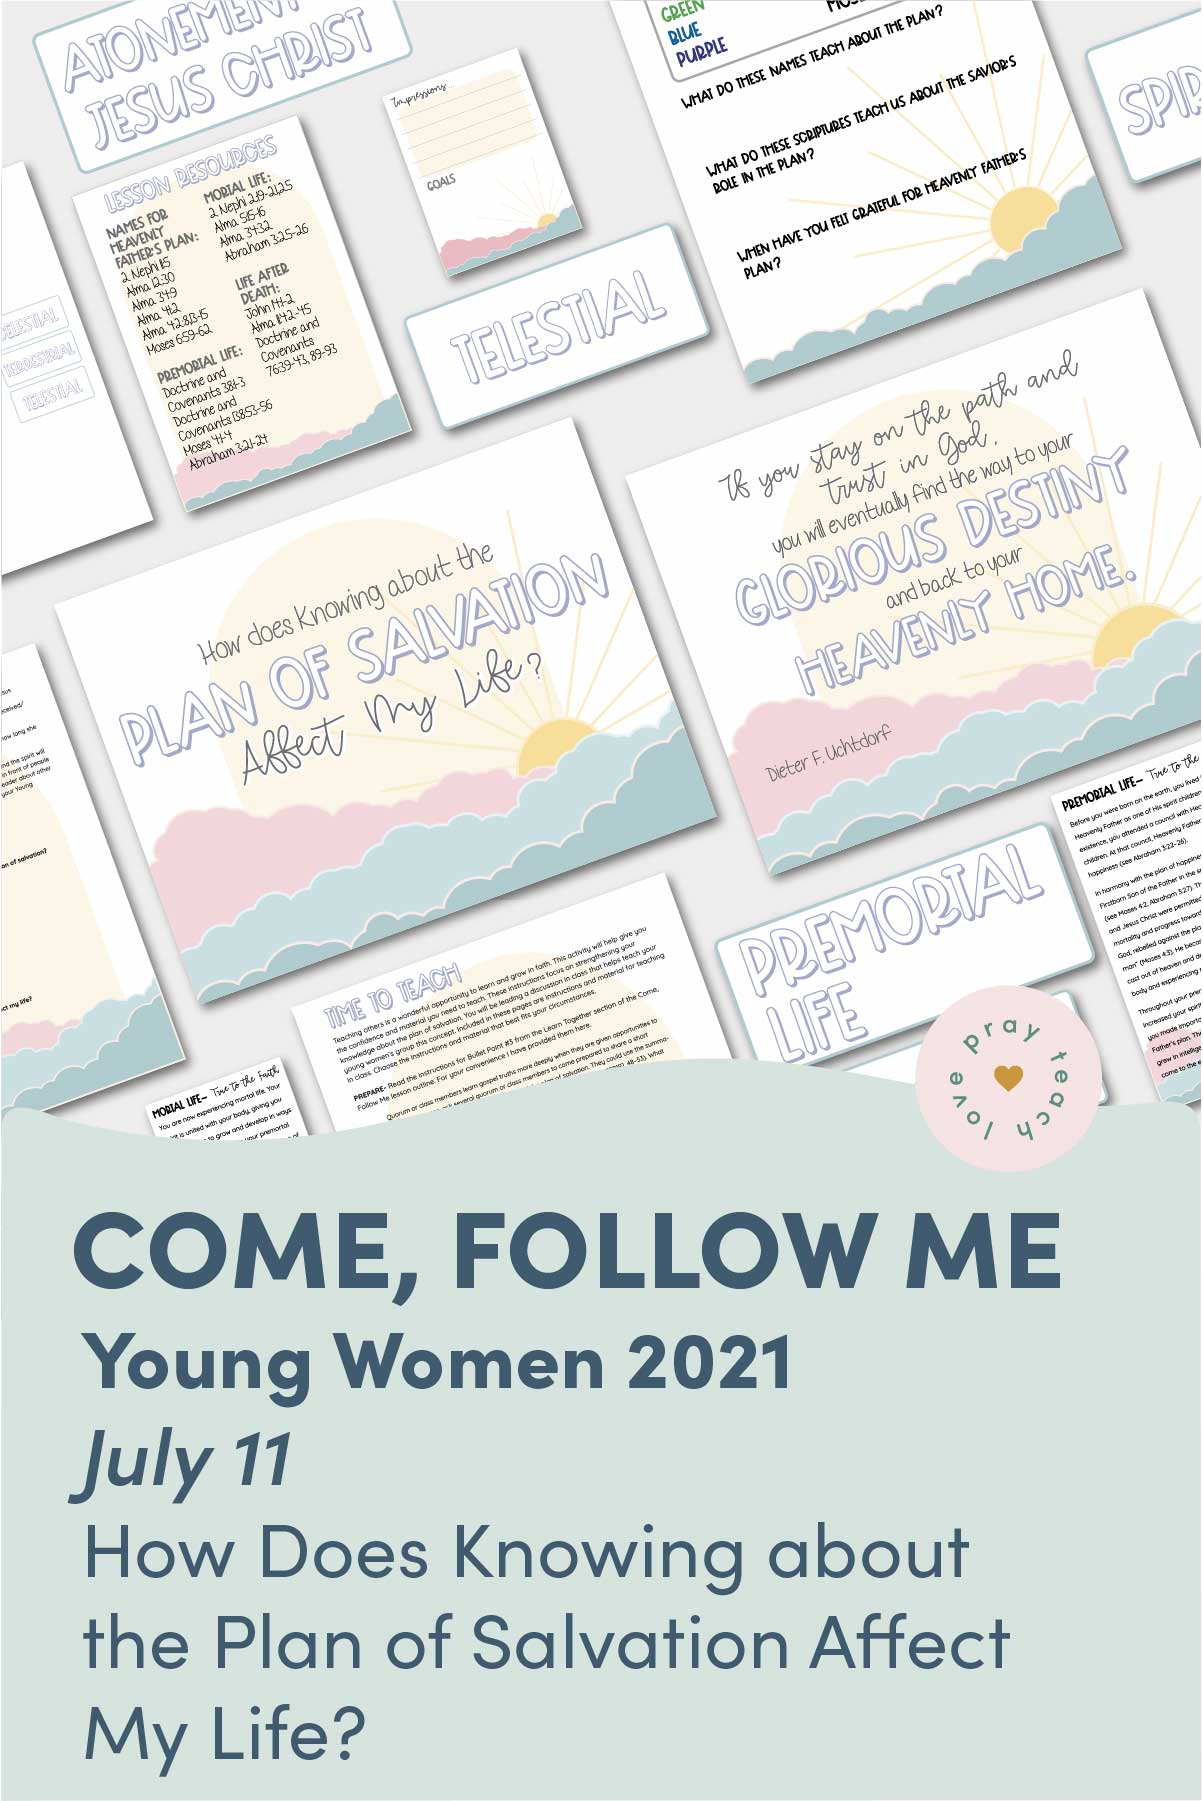 """Young Women Doctrinal Topic July 11: """"How Does Knowing about the Plan of Salvation Affect My Life?"""" Printable Lesson Packet for Doctrine and Covenants 76 www.LovePrayTeach.com"""